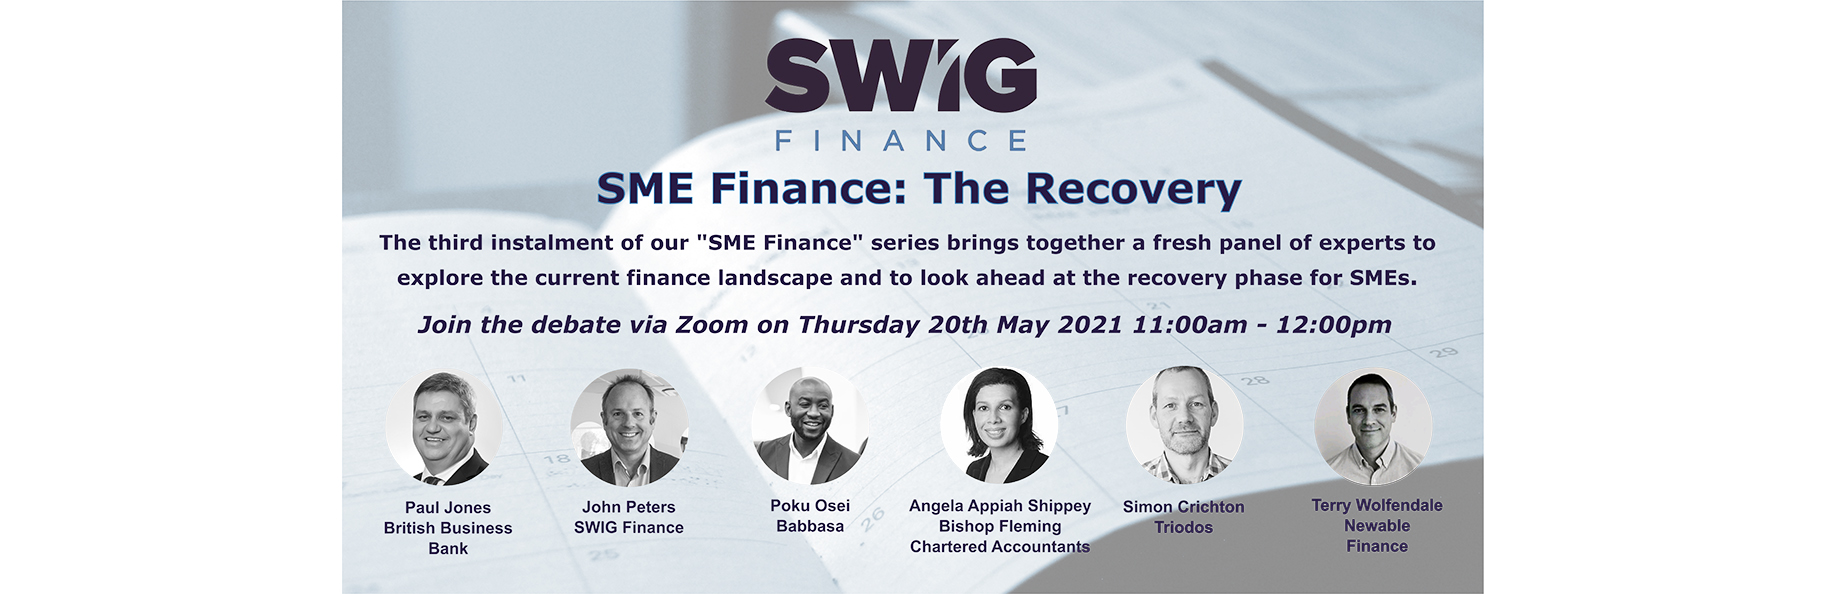 SME Finance: The Recovery – Join our Round Table Virtual Event